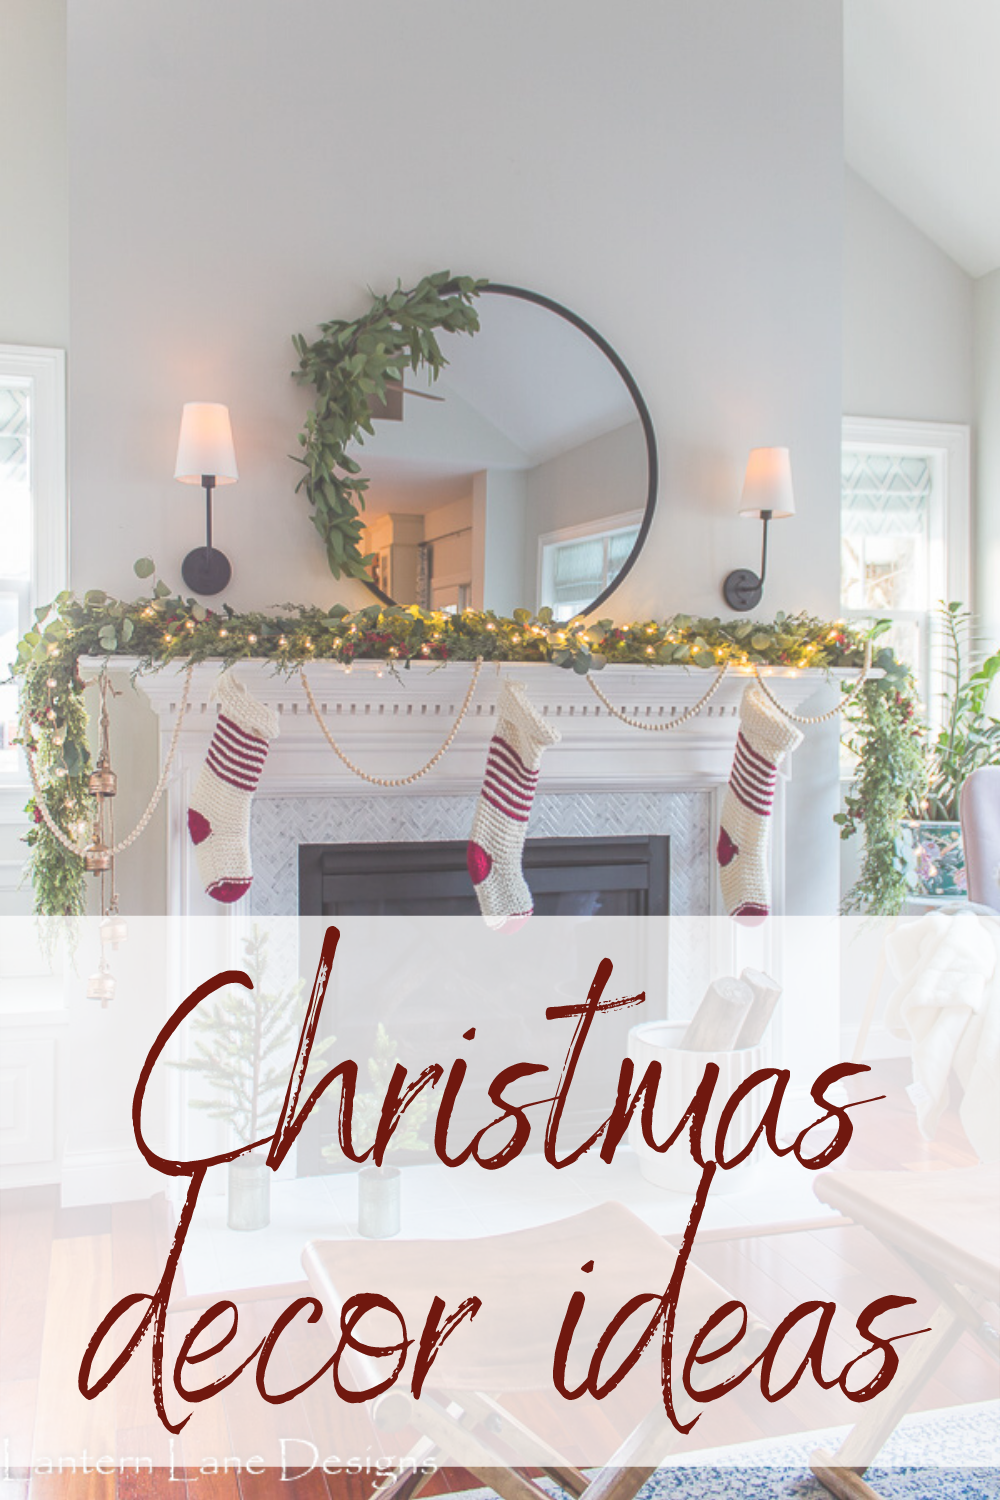 Walking In A Winter Wonderland Christmas Home Tour. I teamed up with some amazing bloggers to show you how to decorate your home for Christmas #christmas #homedecor